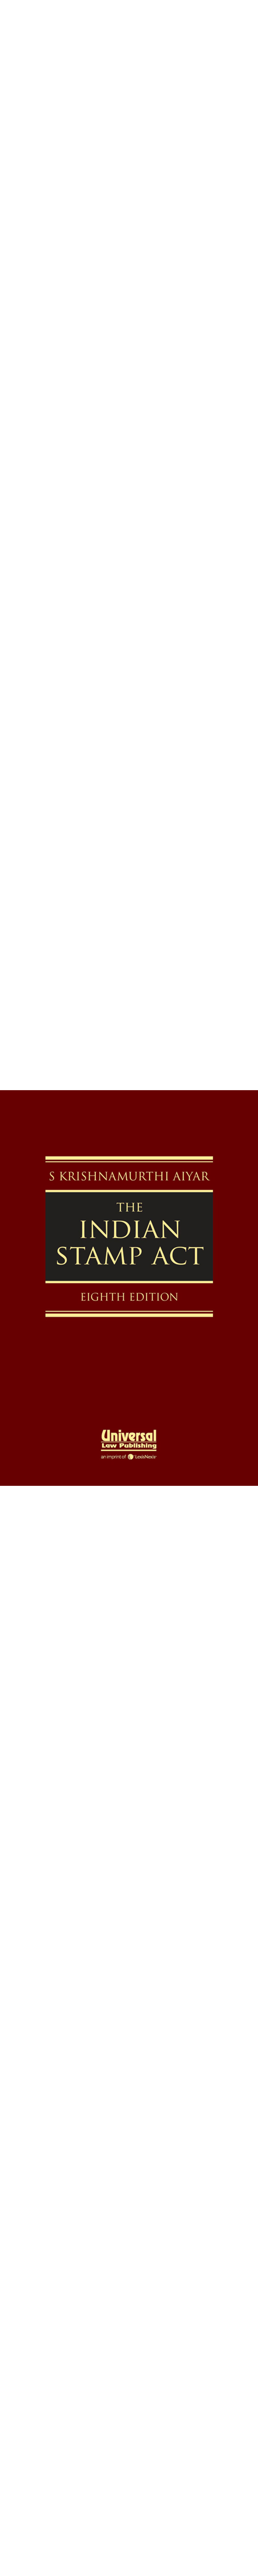 1000x10000 The Indian Stamp Act